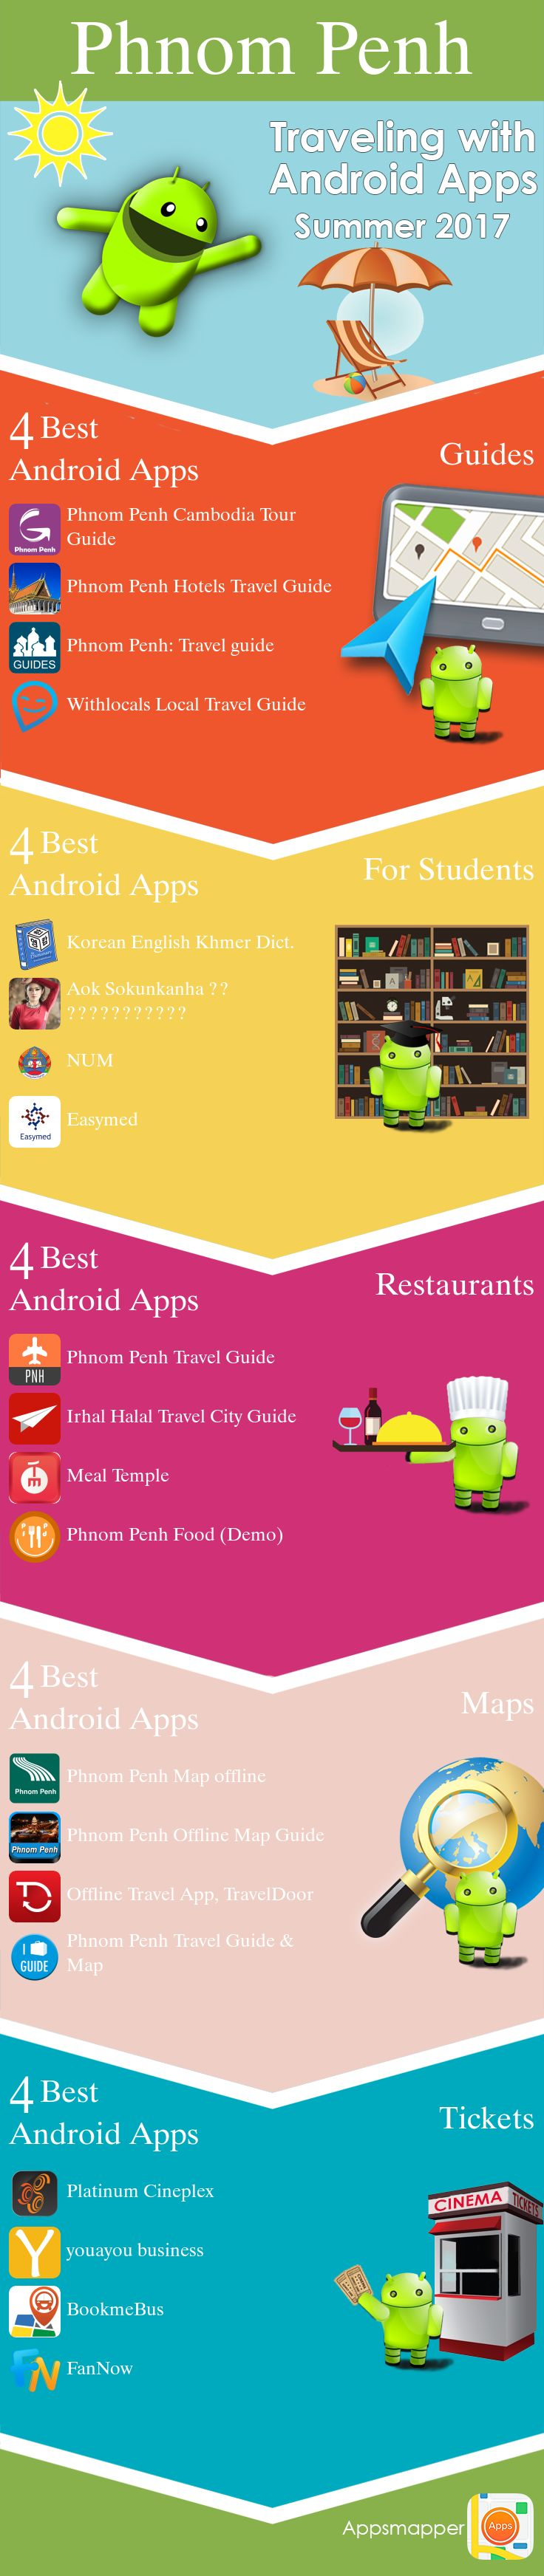 Phnom Penh Android apps: Travel Guides, Maps, Transportation, Biking, Museums, Parking, Sport and apps for Students.